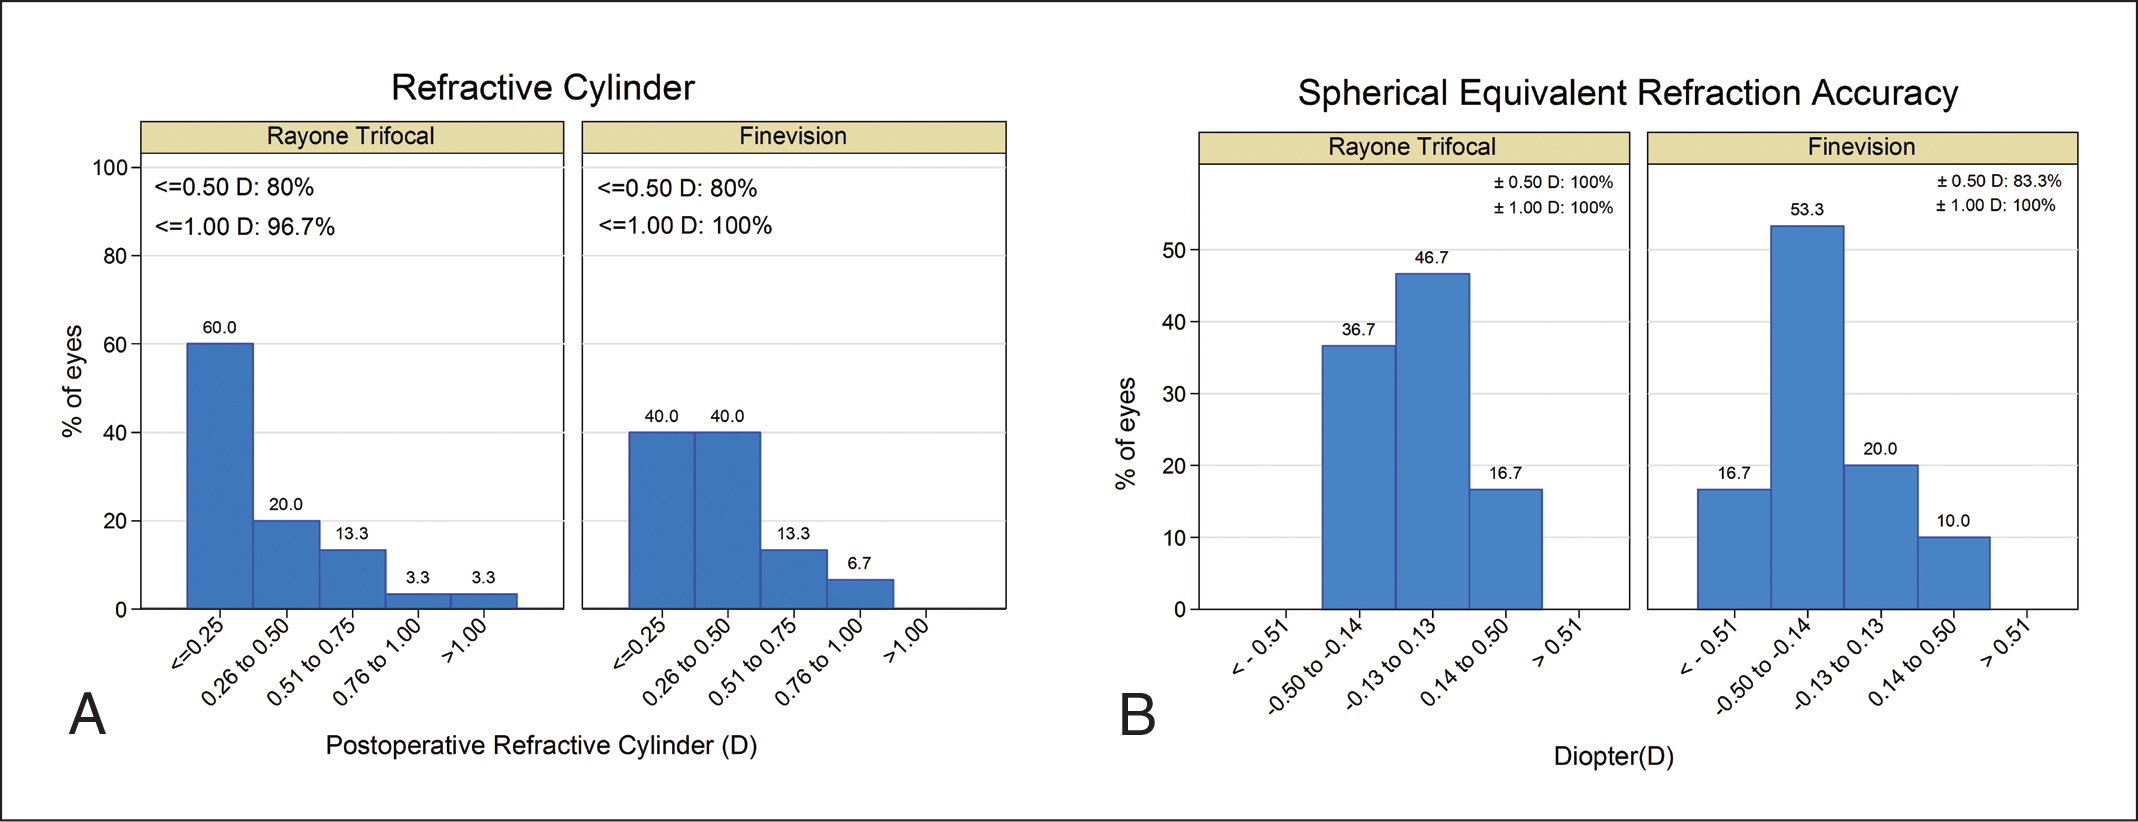 Distribution of the postoperative (A) refractive cylinder and (B) manifest spherical equivalent accuracy. The RayOne Trifocal intraocular lens is manufactured by Rayner, Worthing, UK, and the FineVision POD F intraocular lens is manufactured by PhysIOL, Liège, Belgium. D = diopters